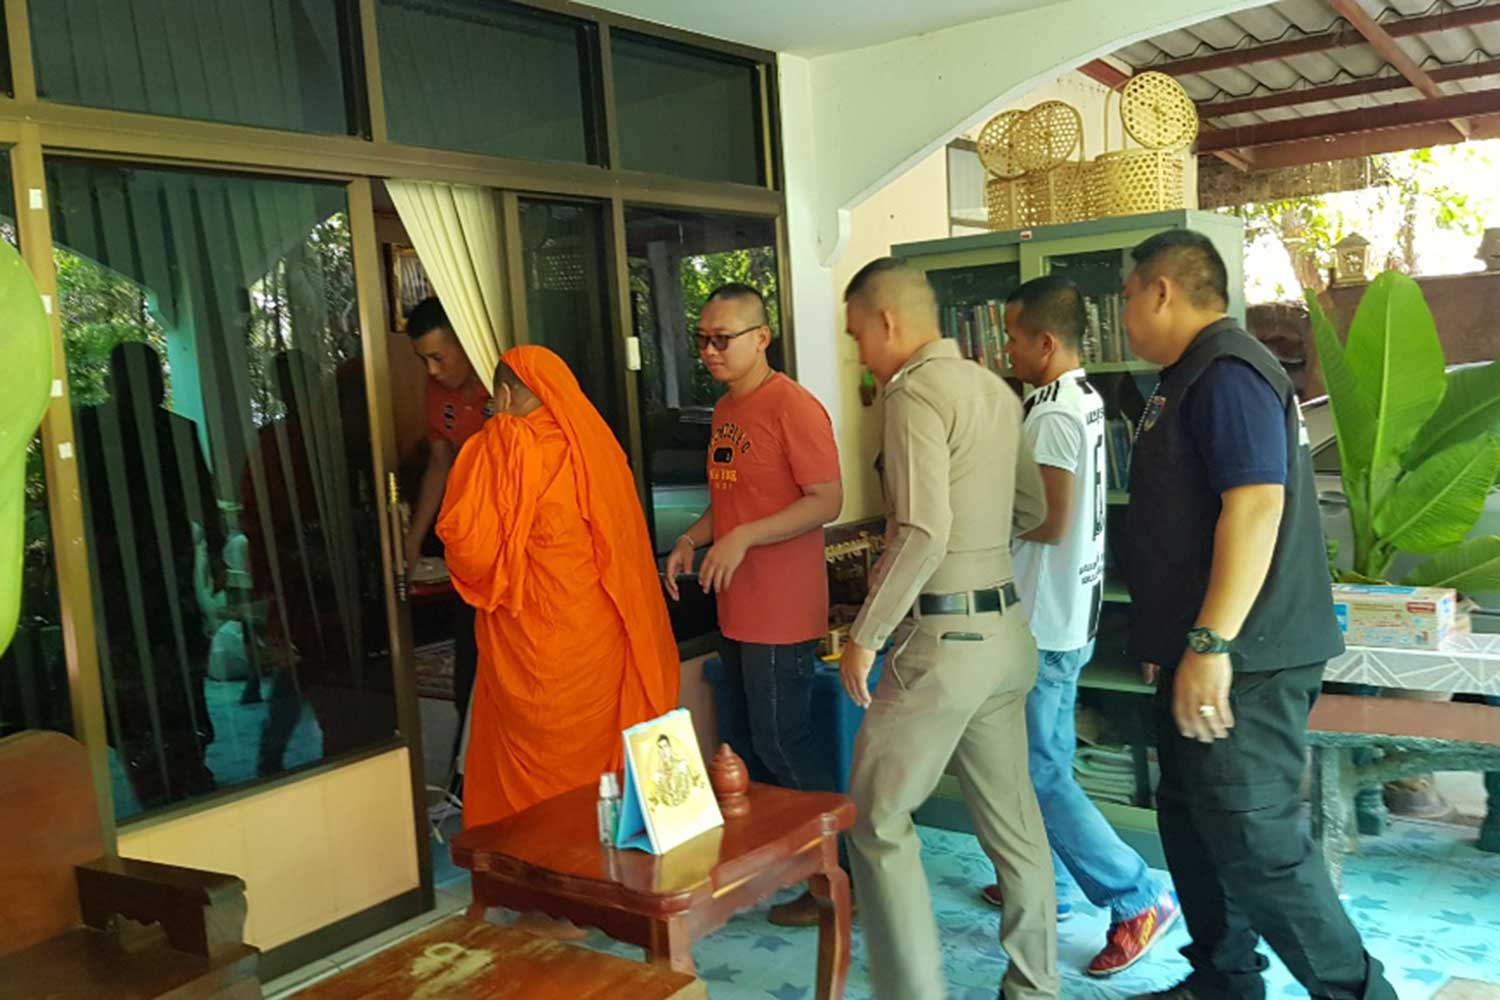 Phra Khru Wichian Panyaporn, 54, or Phra Pamitr, abbot of Wat Chom Sri in Muang district of Phetchabun province, at the provincial police head office after being arrested on a charge of indecent behaviour. (Photo by Soonthorn Kongwarakhom)